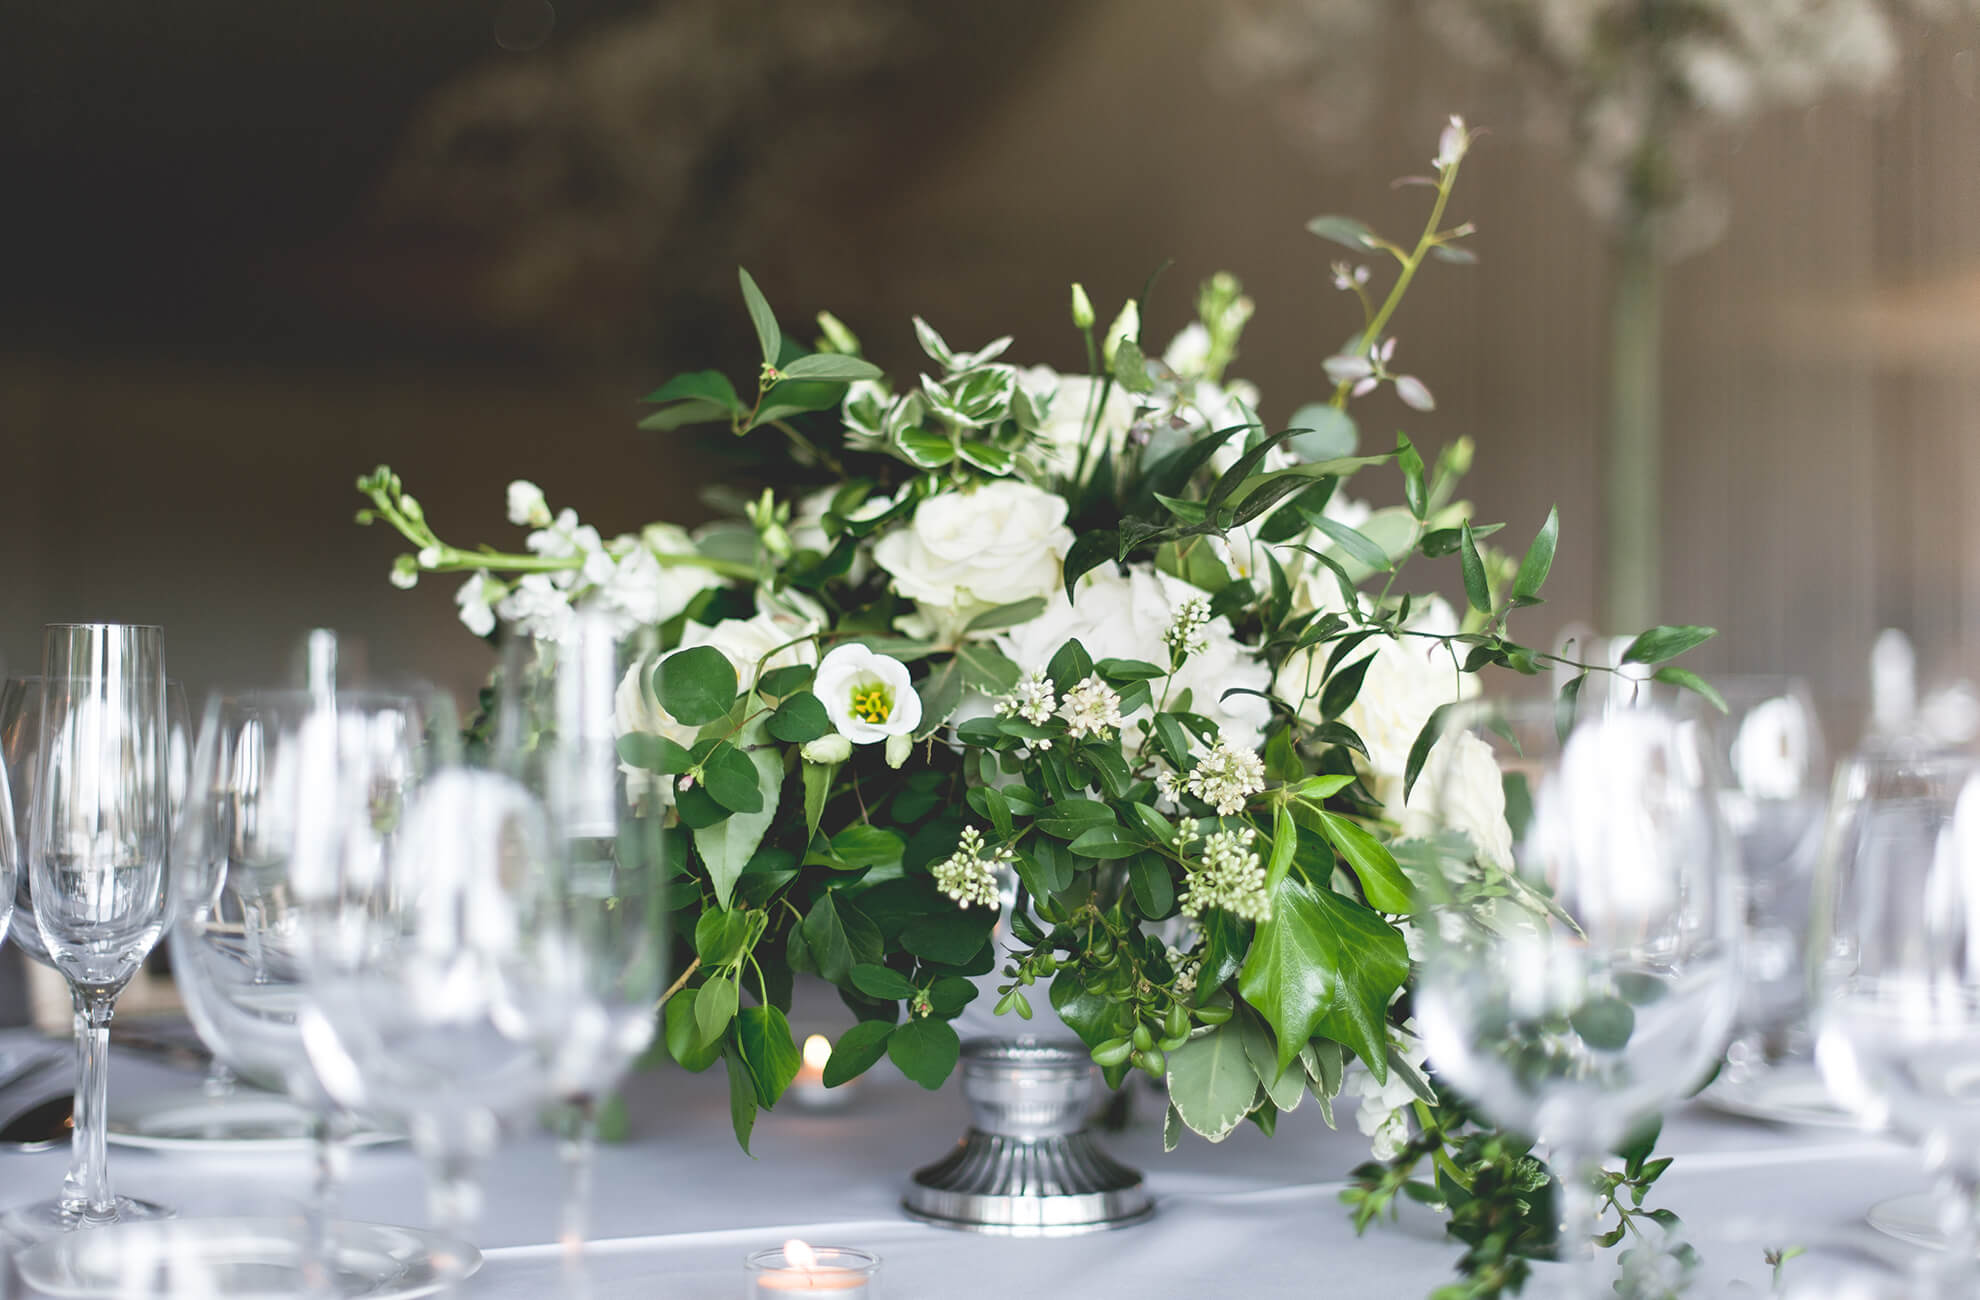 White and green wedding flowers sit in silver urns for stunning wedding table centrepieces at a Combermere Abbey wedding